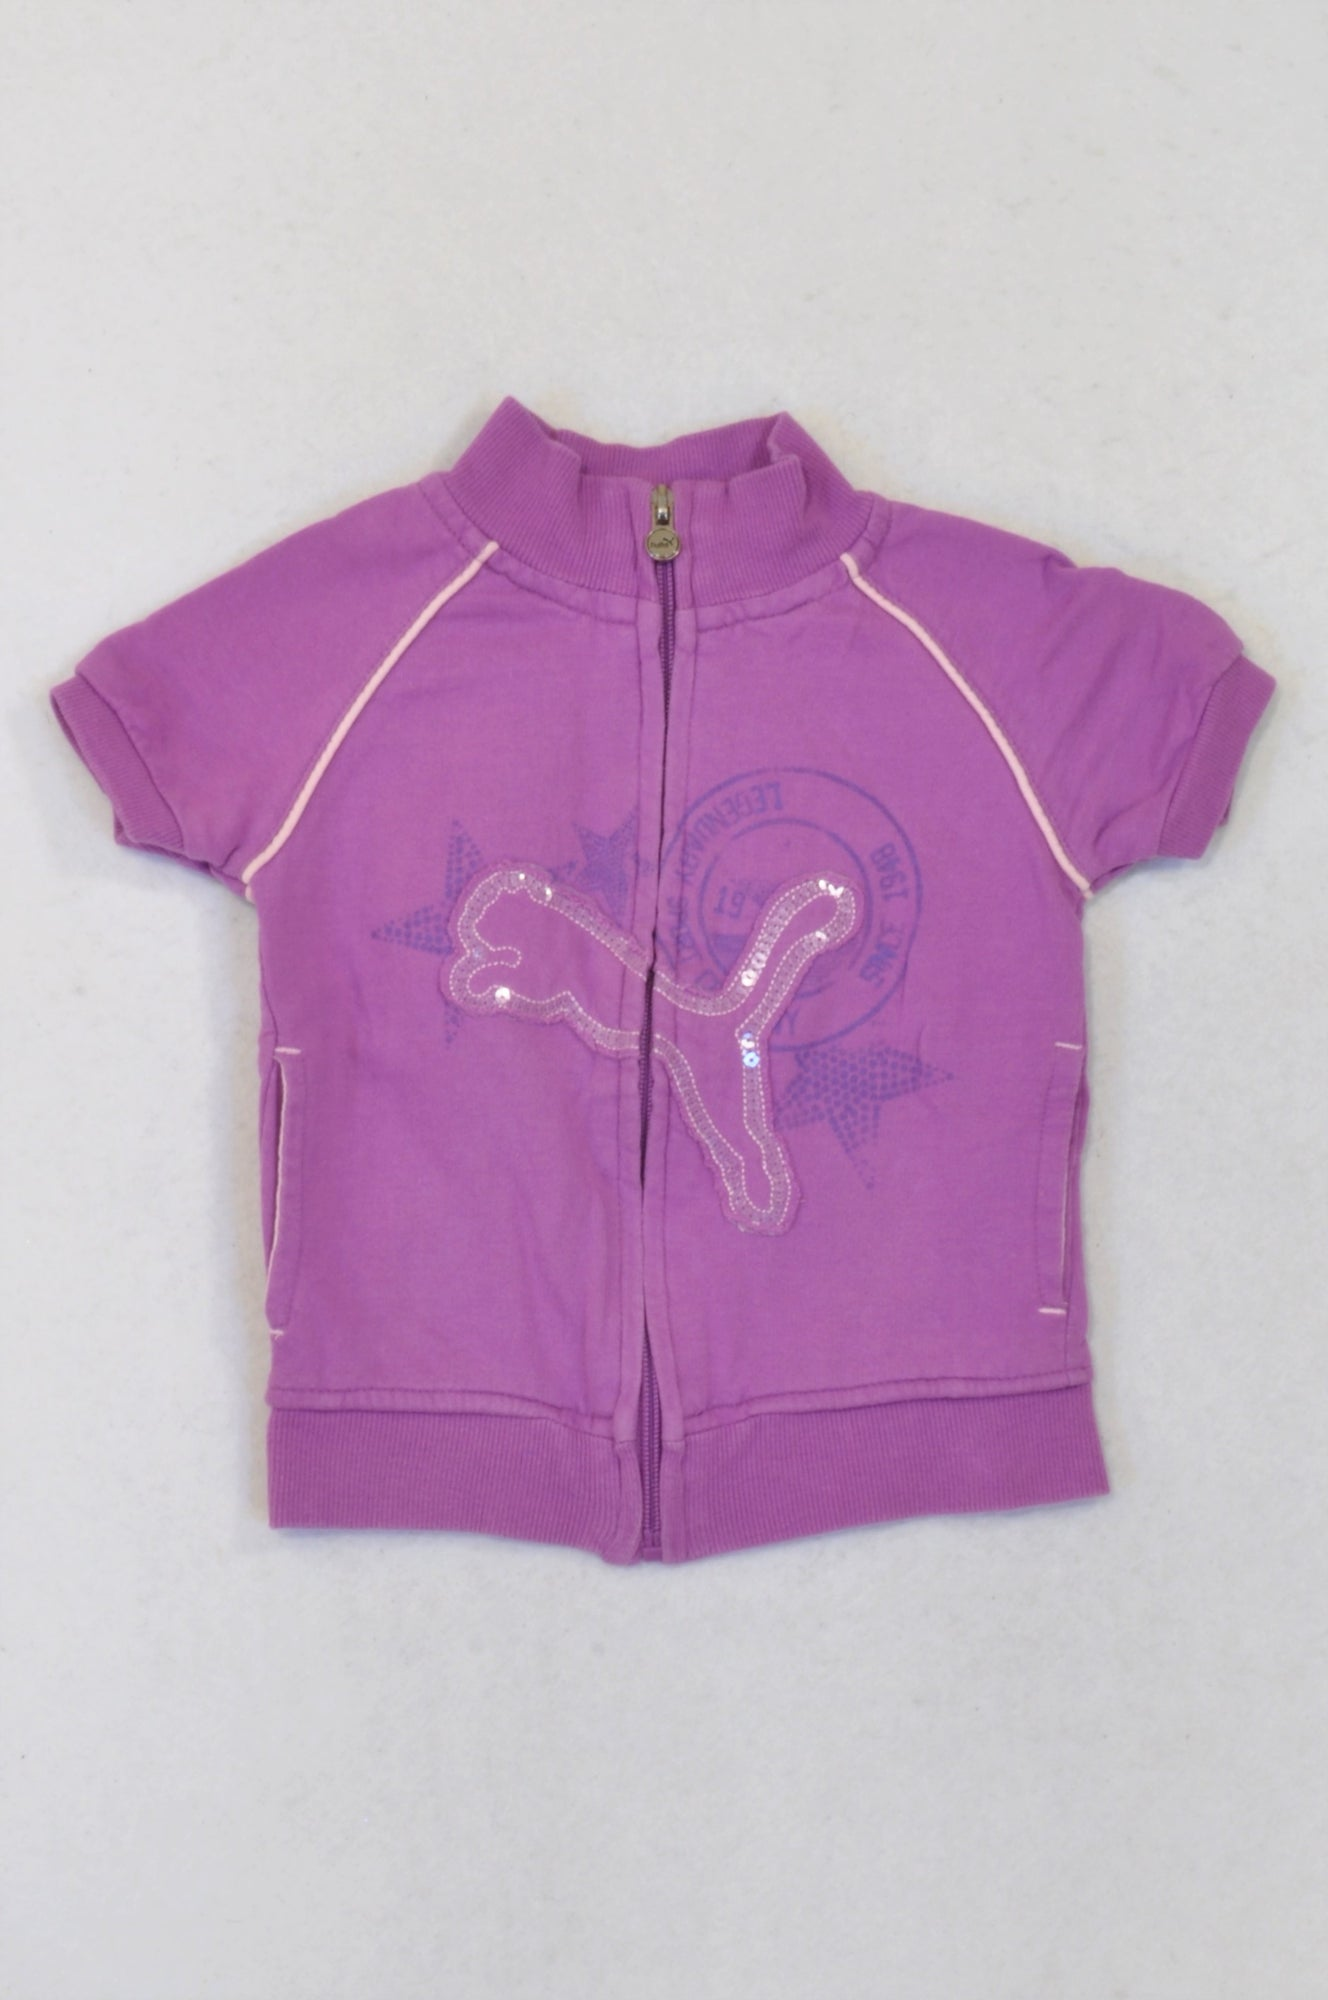 Puma Purple Sequin Detail Short Sleeve Jacket Girls 2-3 years